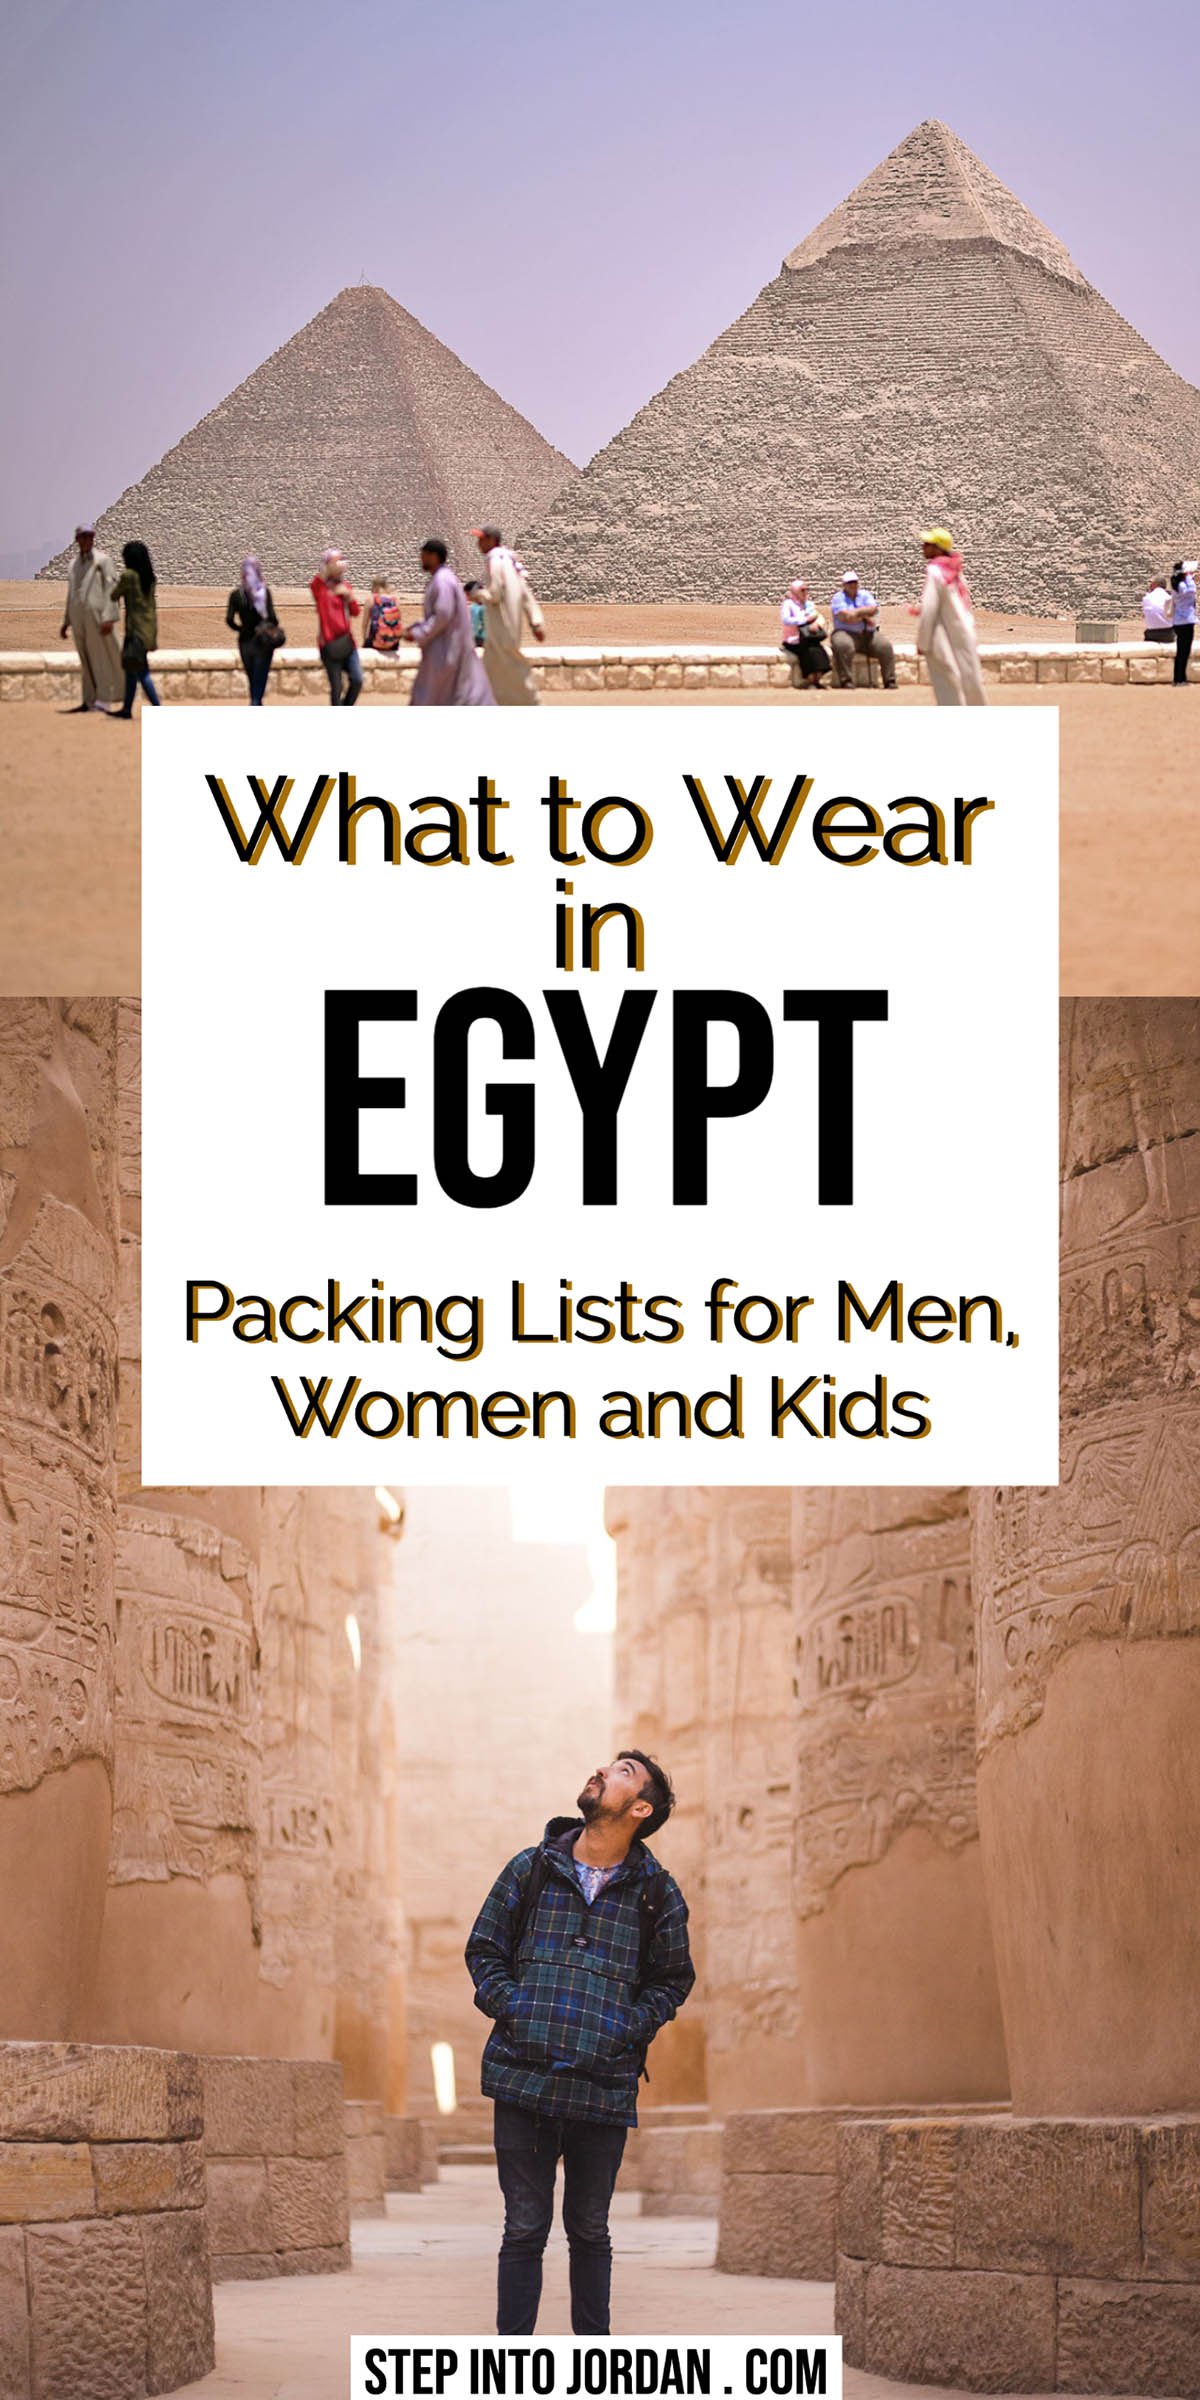 What to wear in Egypt